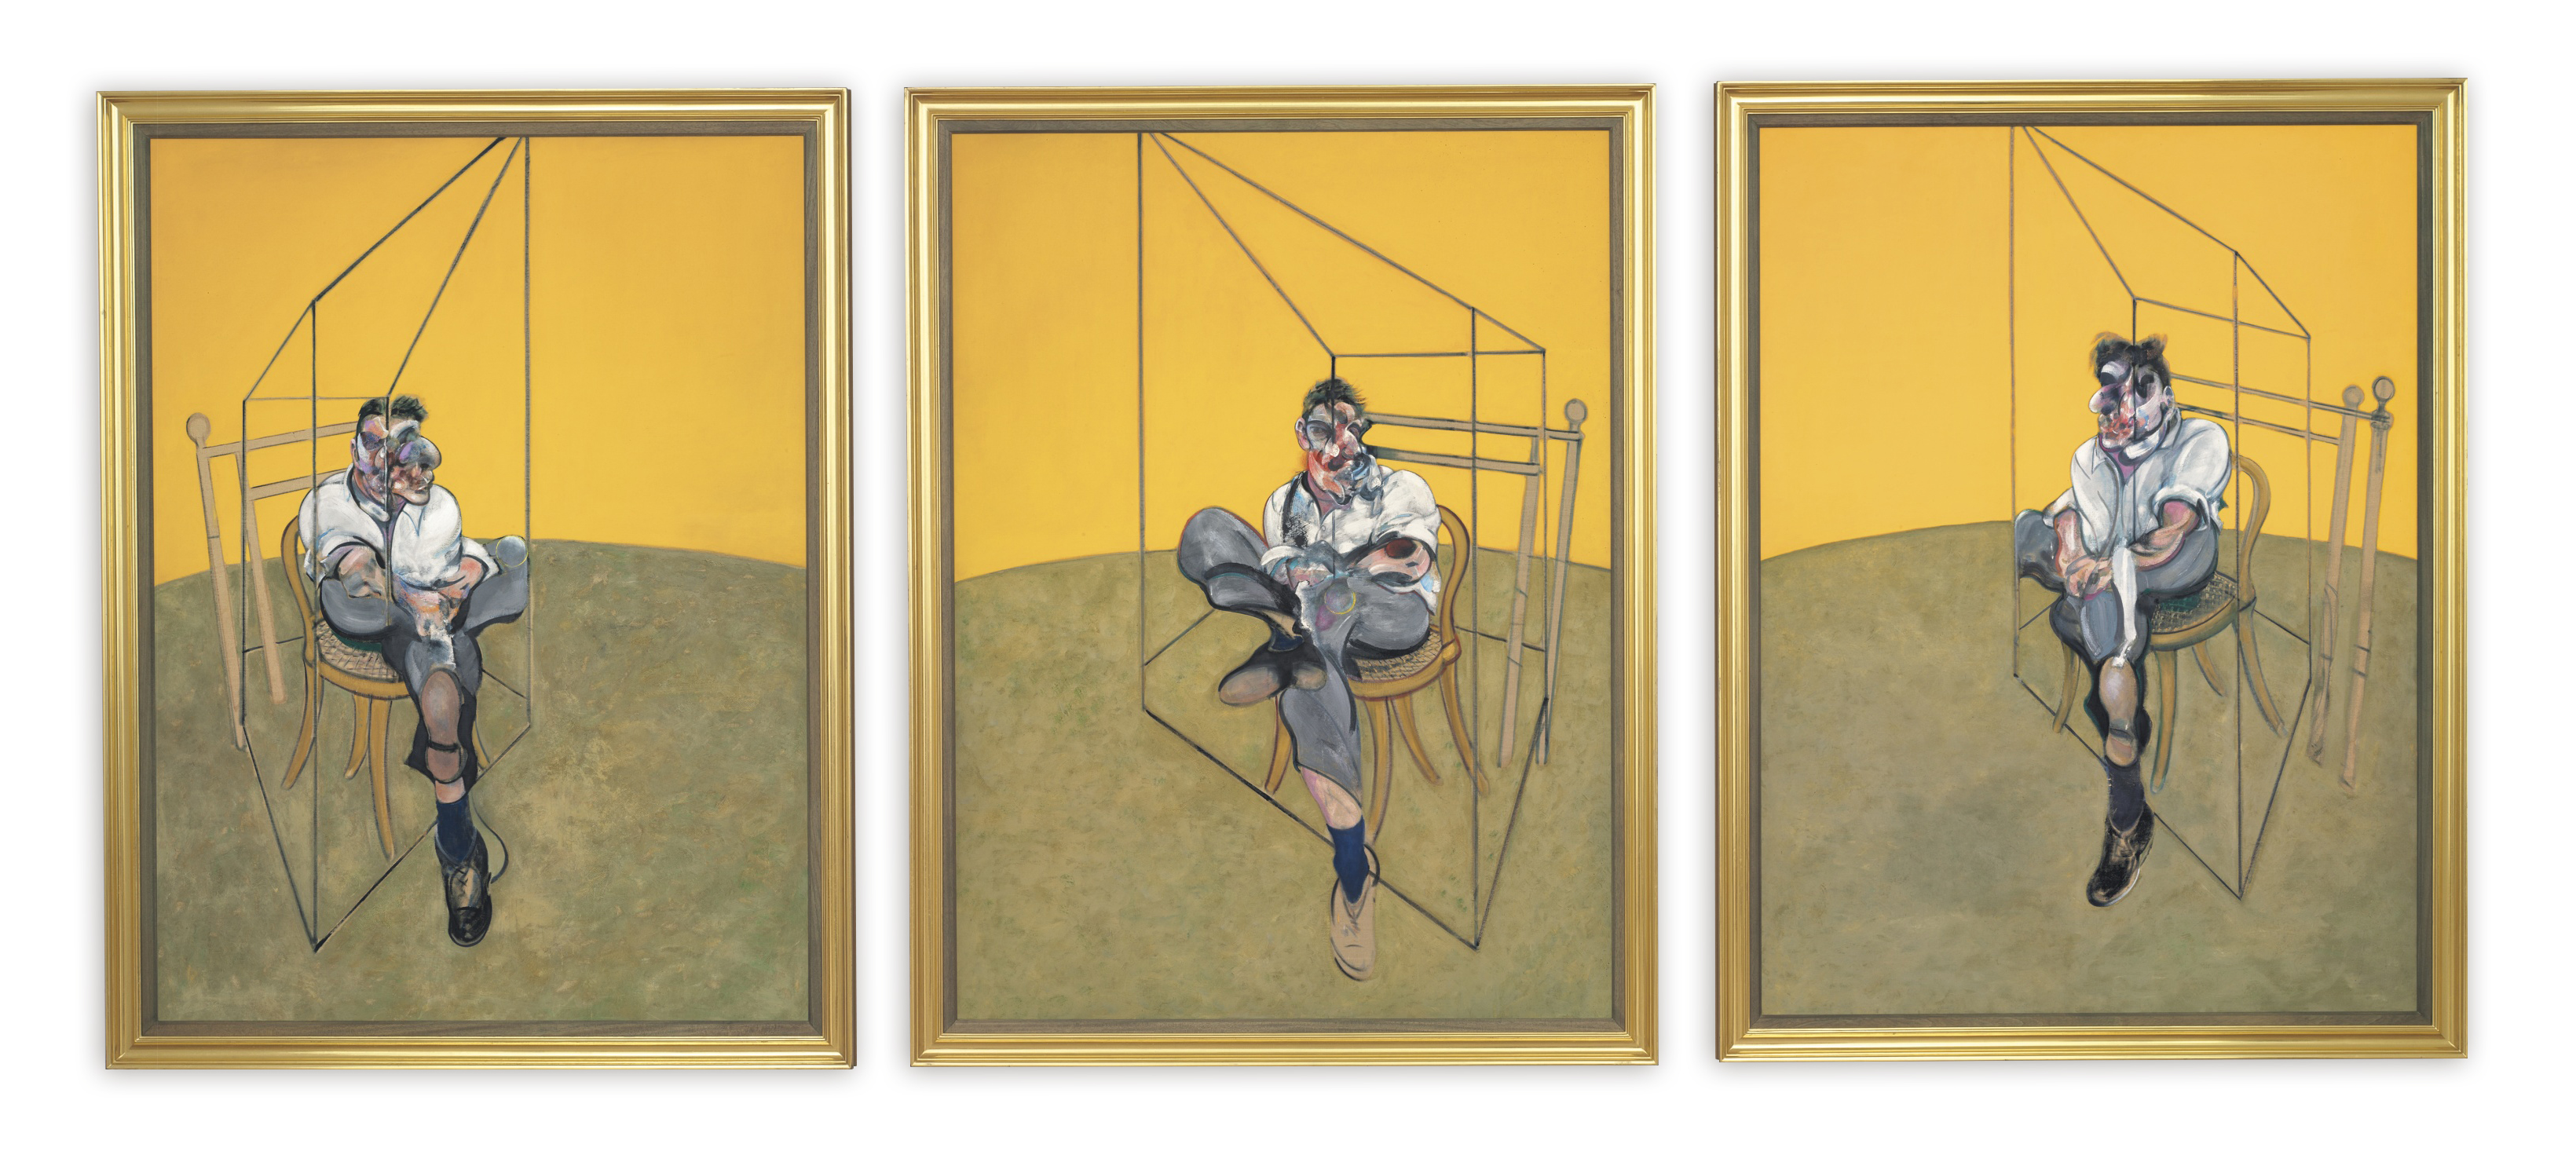 Image result for three studies of lucian freud by francis bacon, 1969.